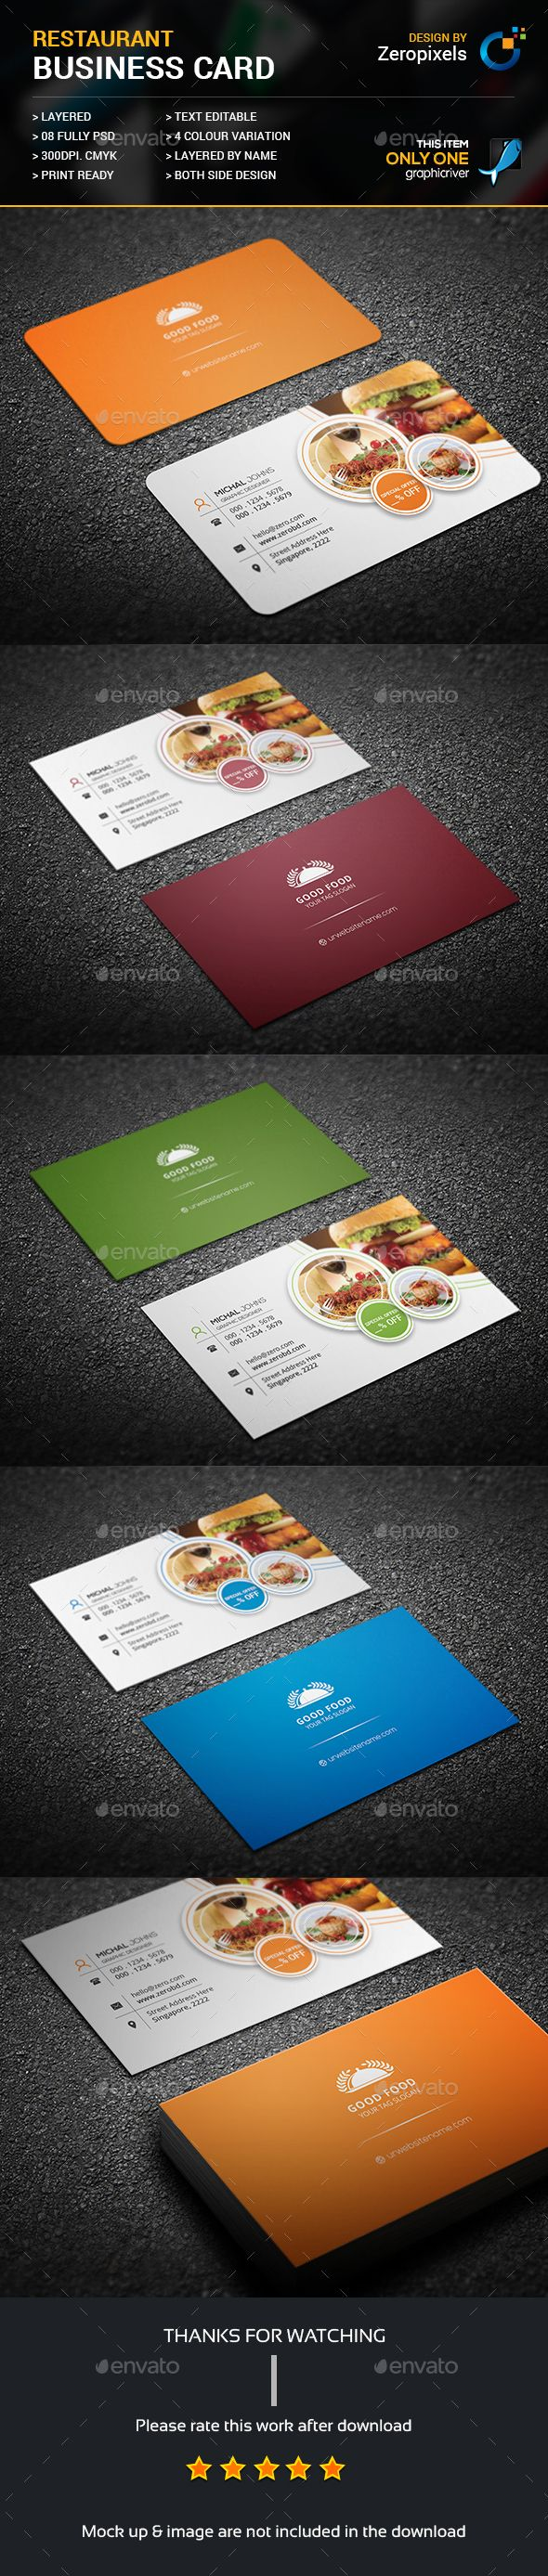 restaurant business card template psd download here https